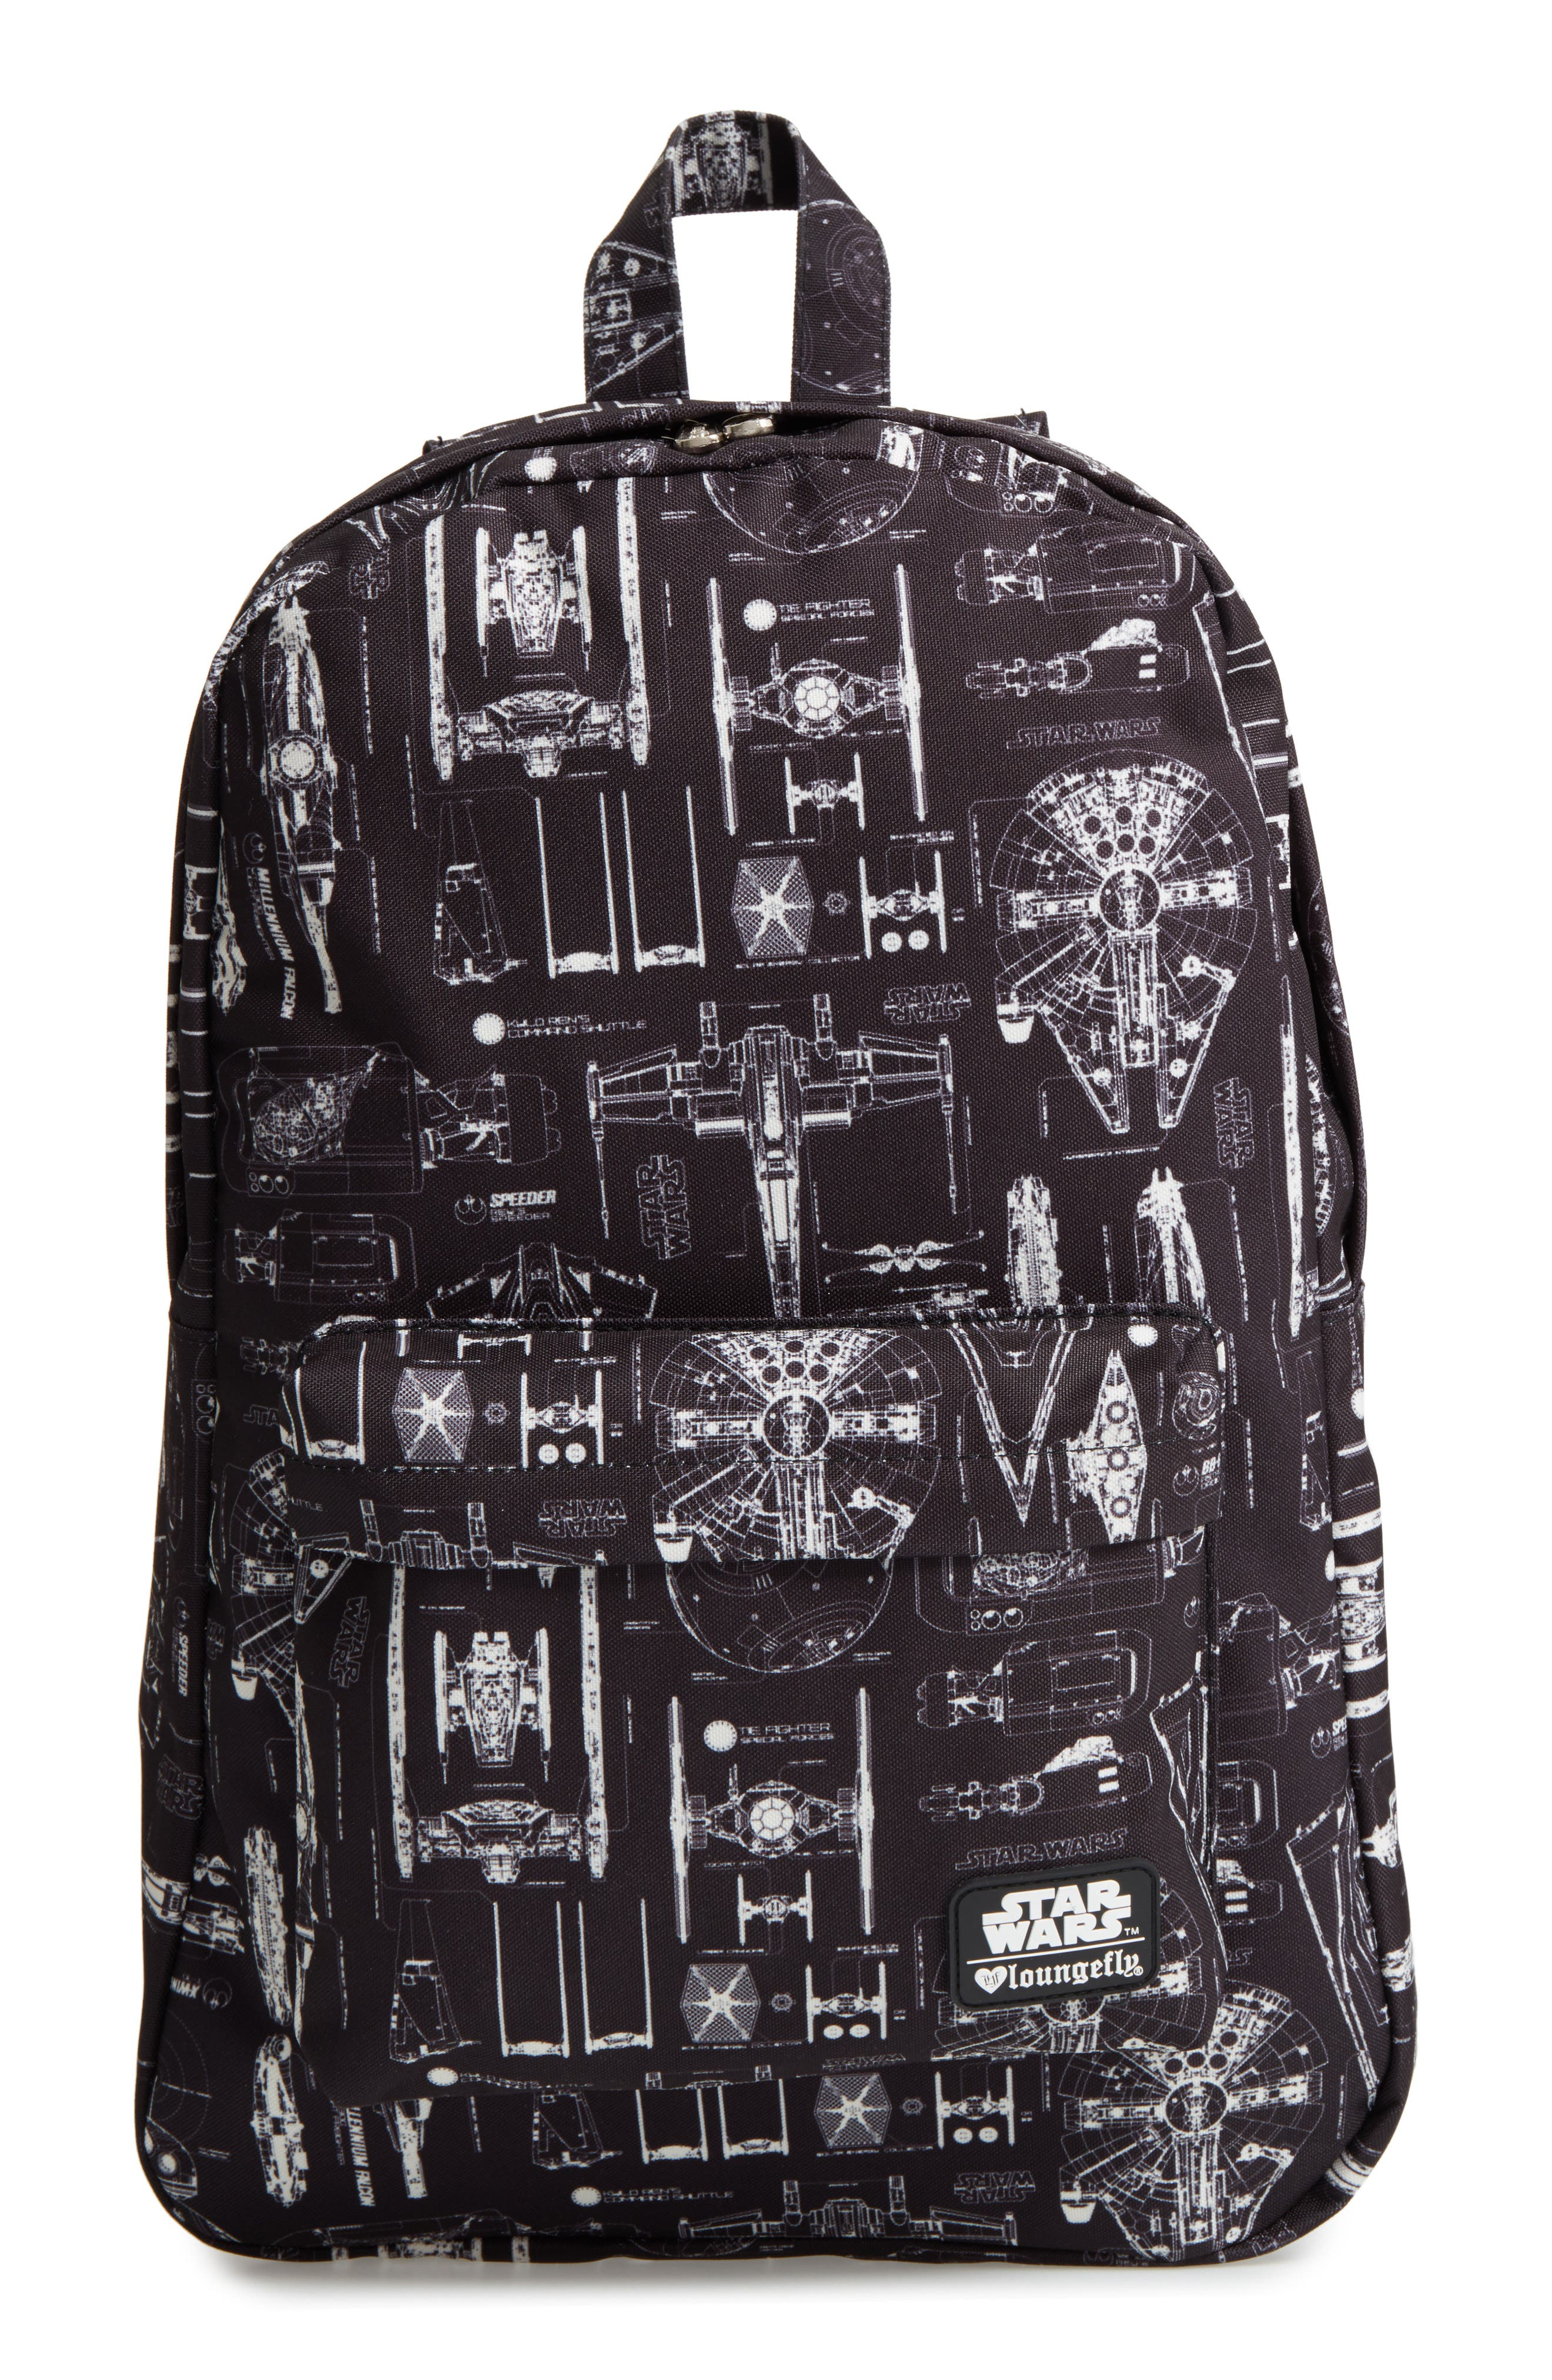 Star Wars<sup>™</sup> The Force Awakens Blueprint Backpack,                             Main thumbnail 1, color,                             001